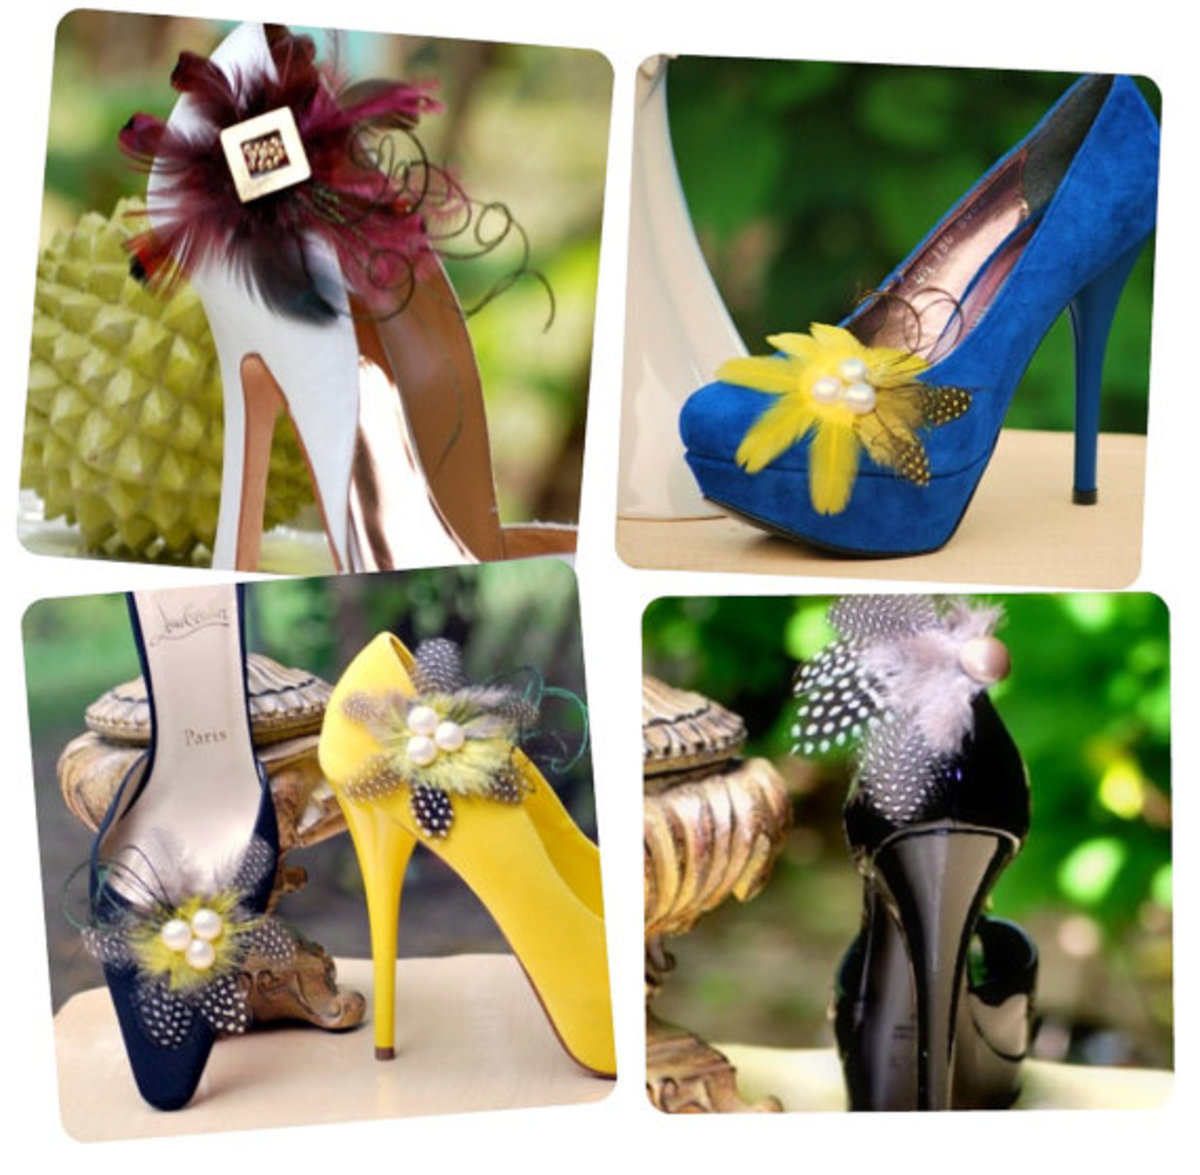 Shoe Clips - fit for the fashionista